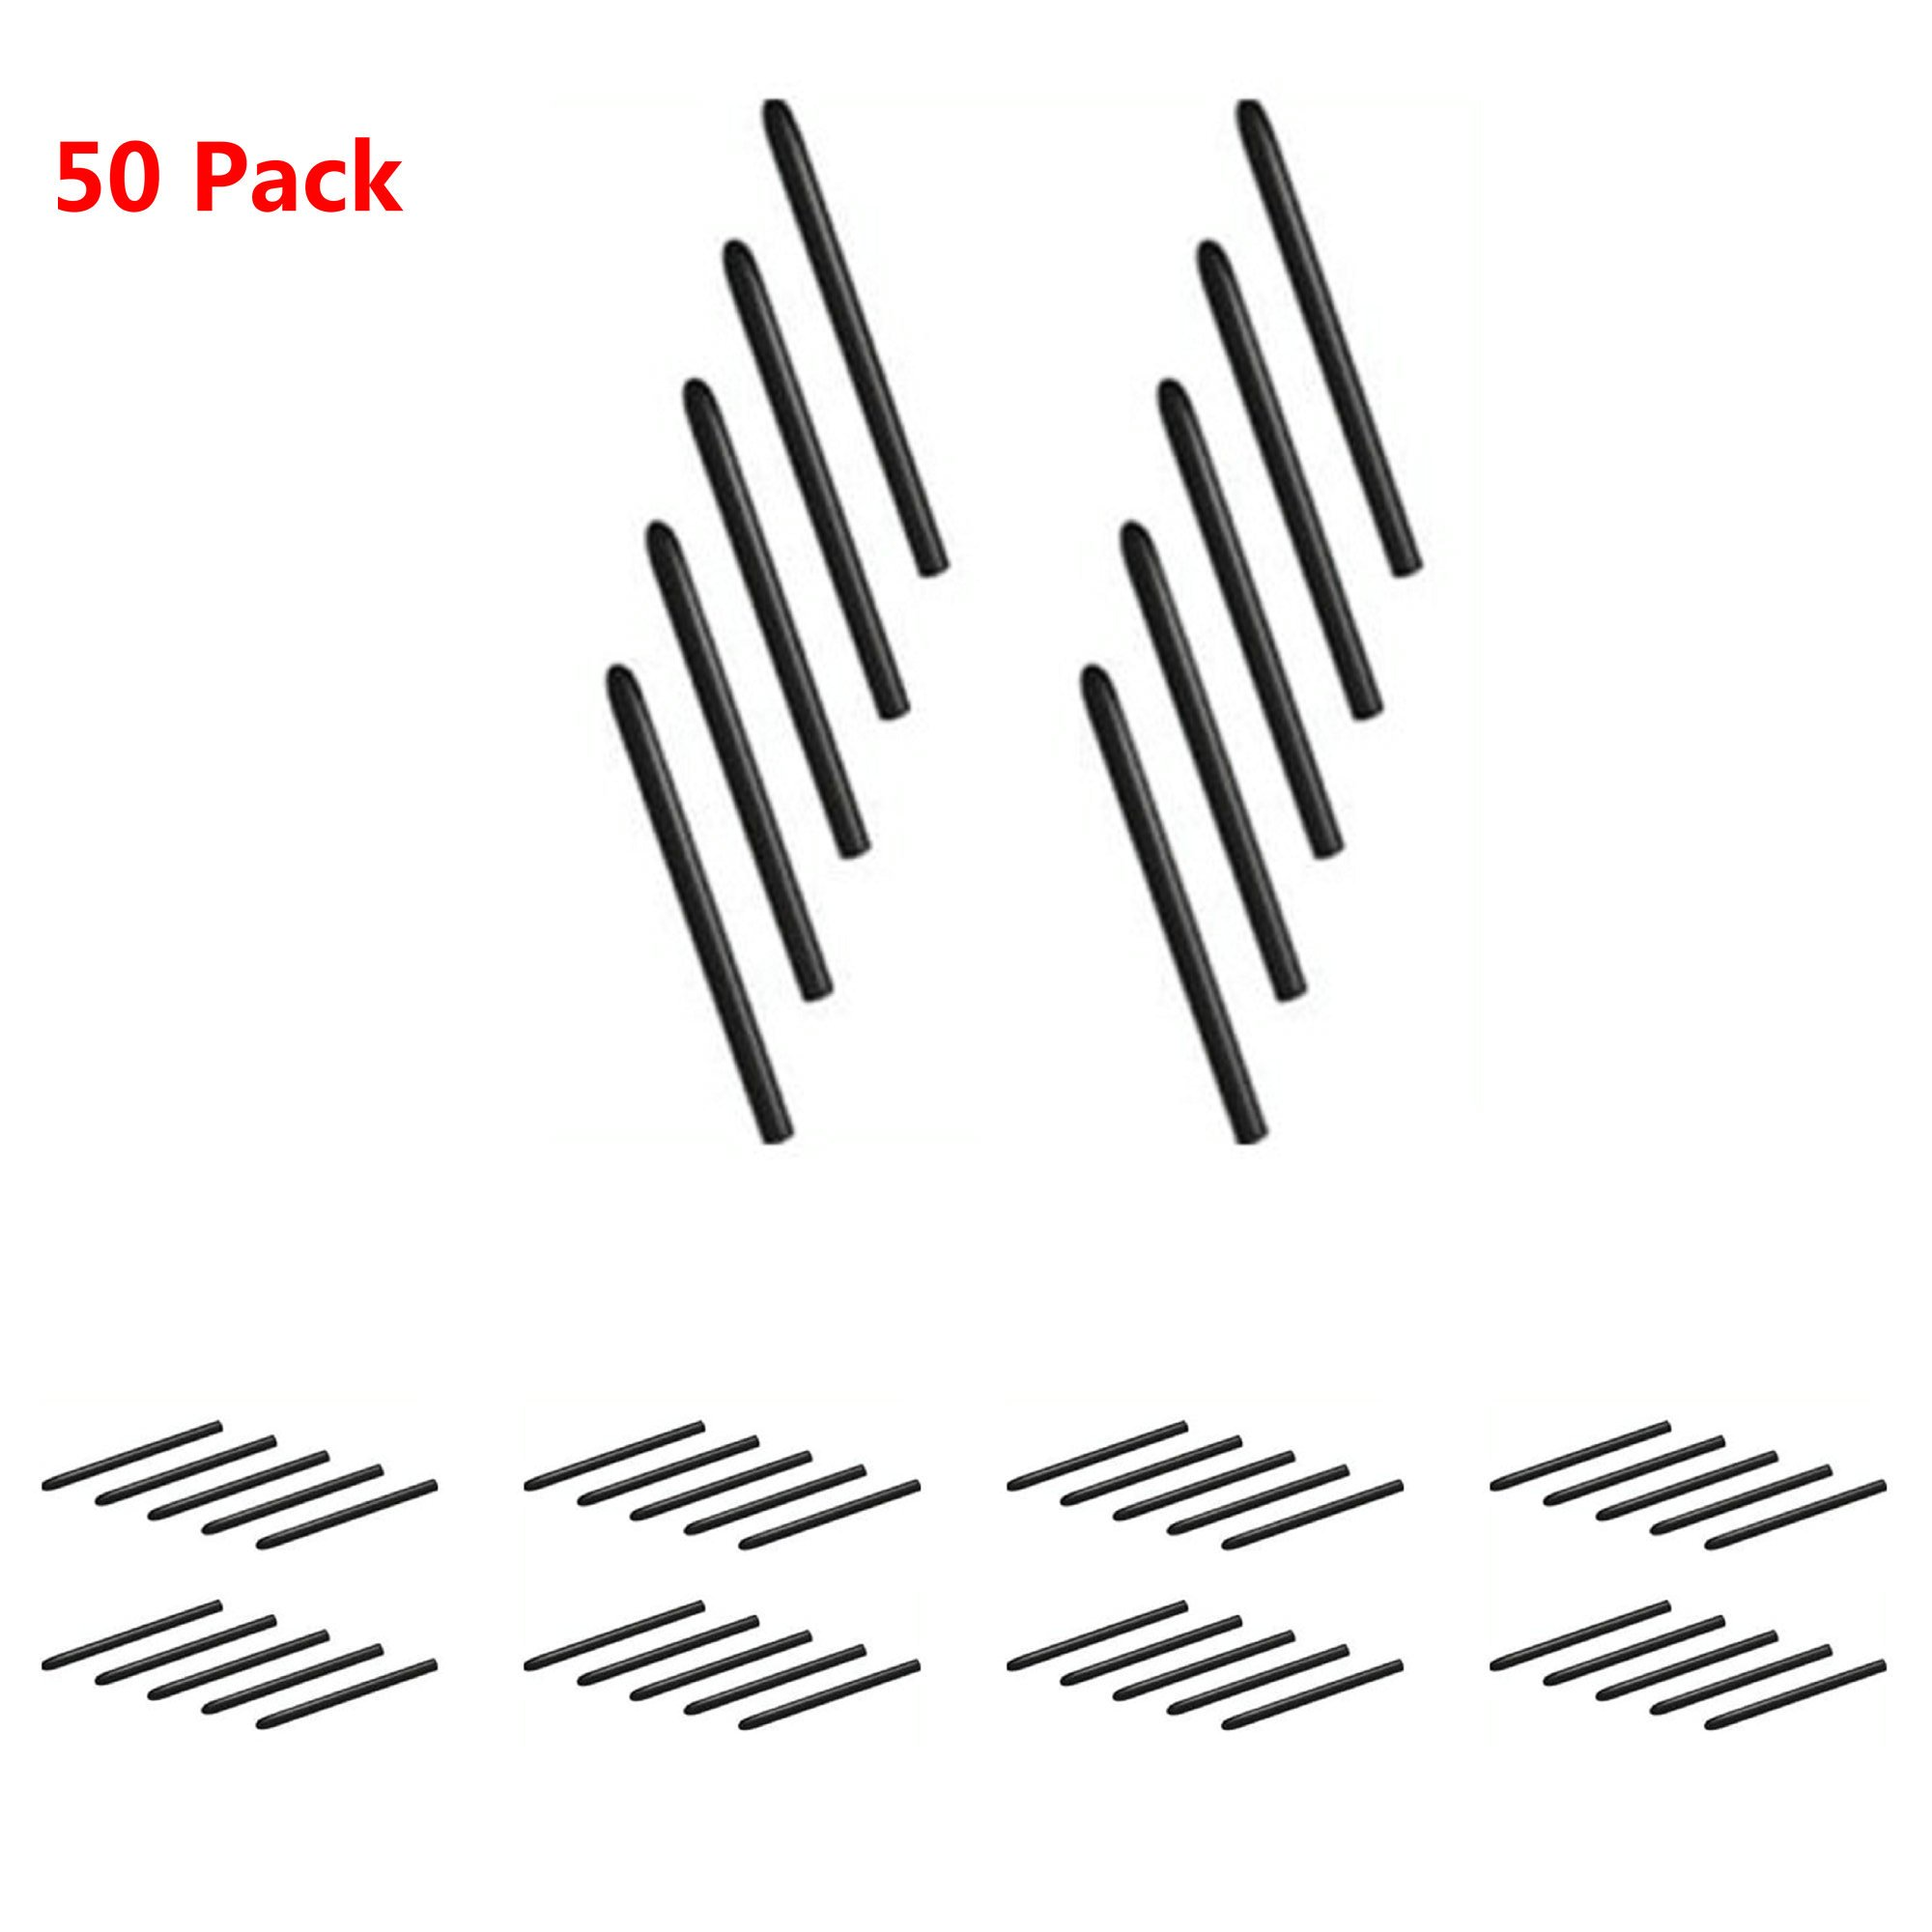 New Standard Replacement Nibs for Wacom Bamboo & Intuos Pens 50 Pack Black